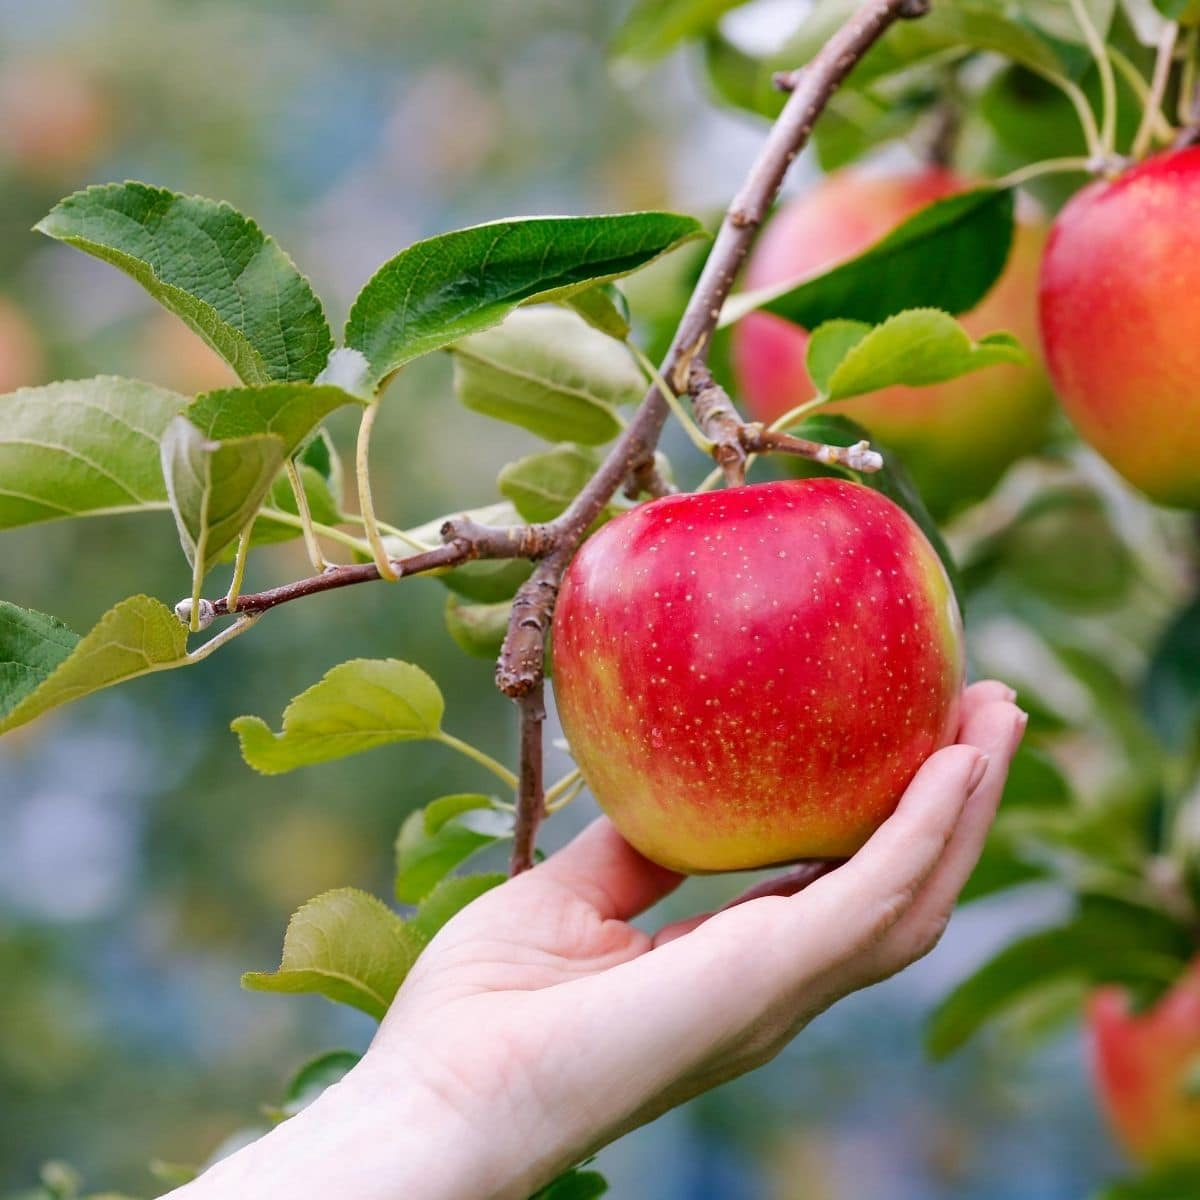 a hand reaching up and picking a red apple from a tree